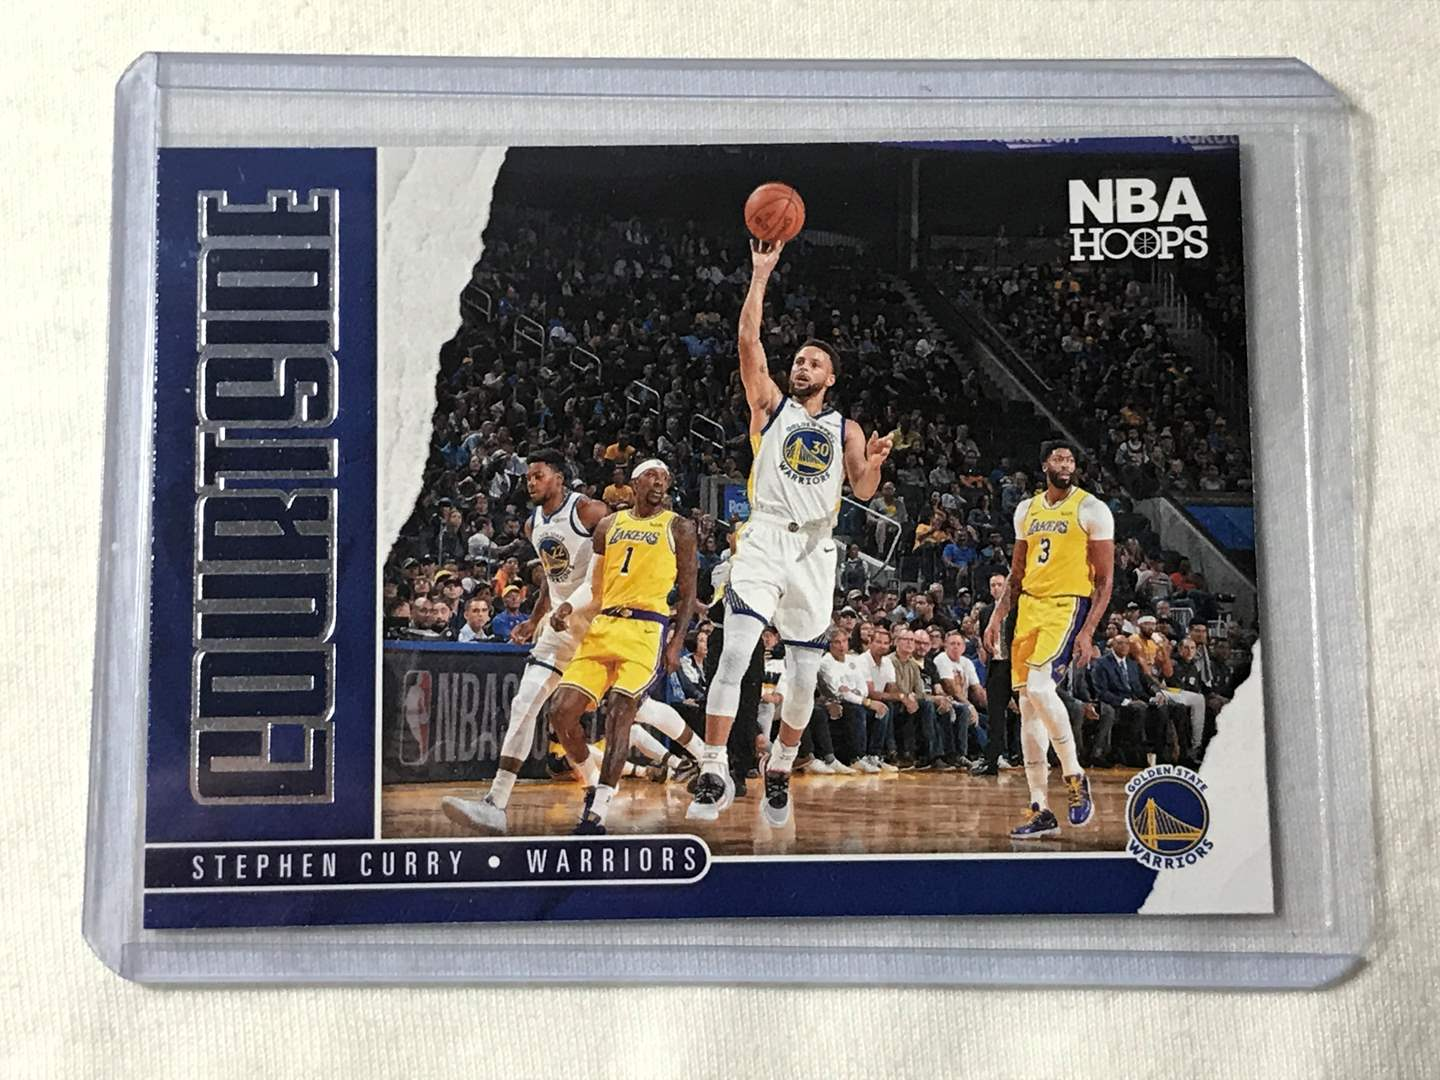 Lot # 42 2020-2021 Panini Hoops COURTSIDE STEPHEN CURRY (main image)